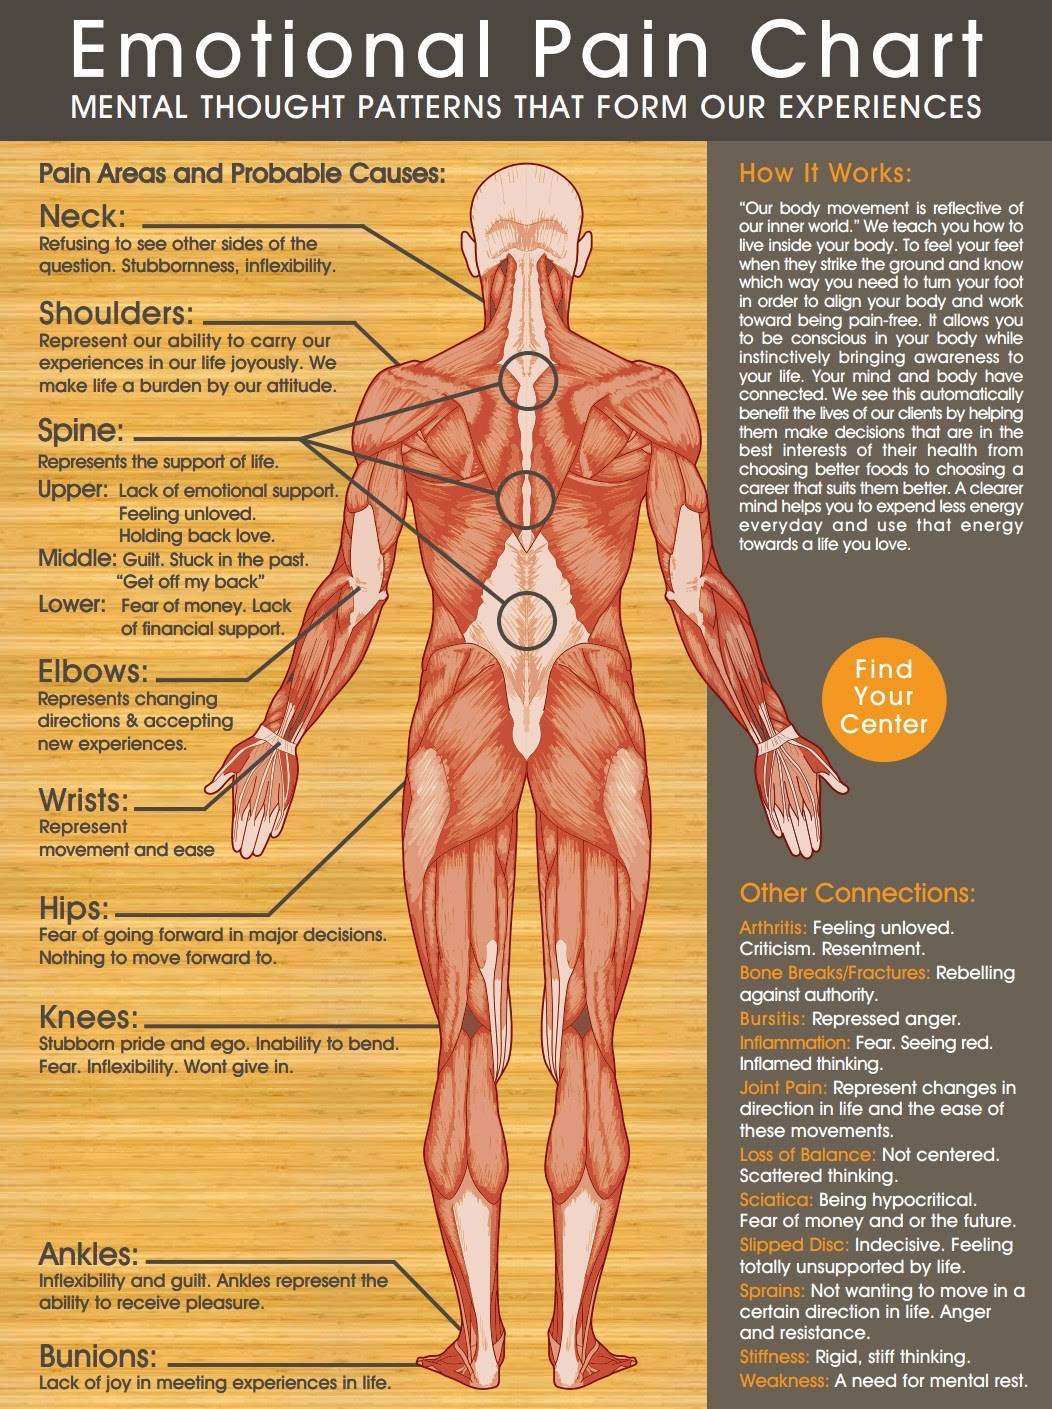 Emotional Pain Chart - Our body movement is reflective of our inner world. This chart is an excellent, thought-provoking contemplation on how mental thought patterns form our experiences, including that of pain in the body.This is a strong affirmation of Dr. Sarno's work posted above: Healing Back Pain: The Mind Body Connection.